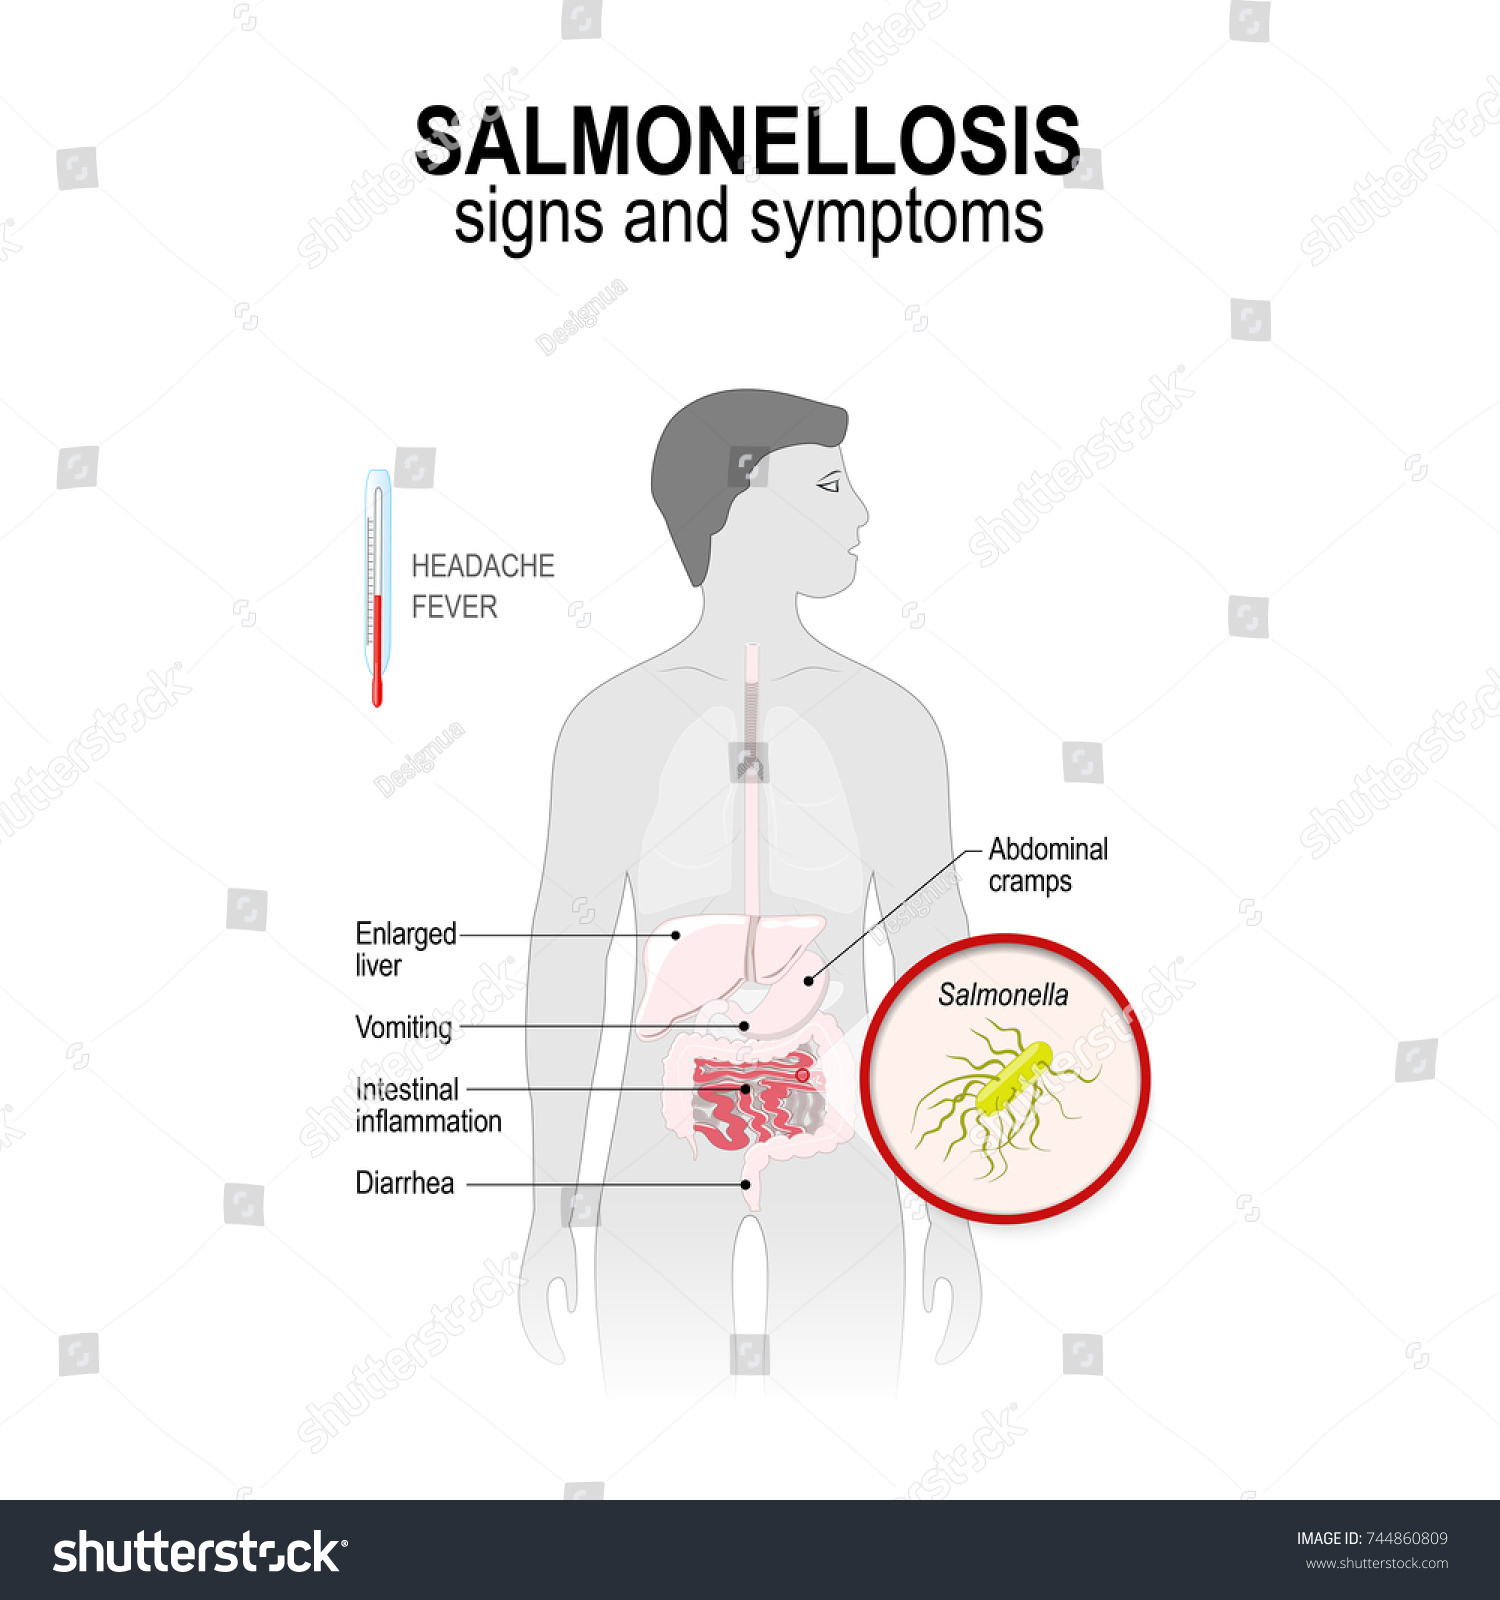 Salmonellosis Signs Symptoms Man Silhouette Highlighted Stock Vector